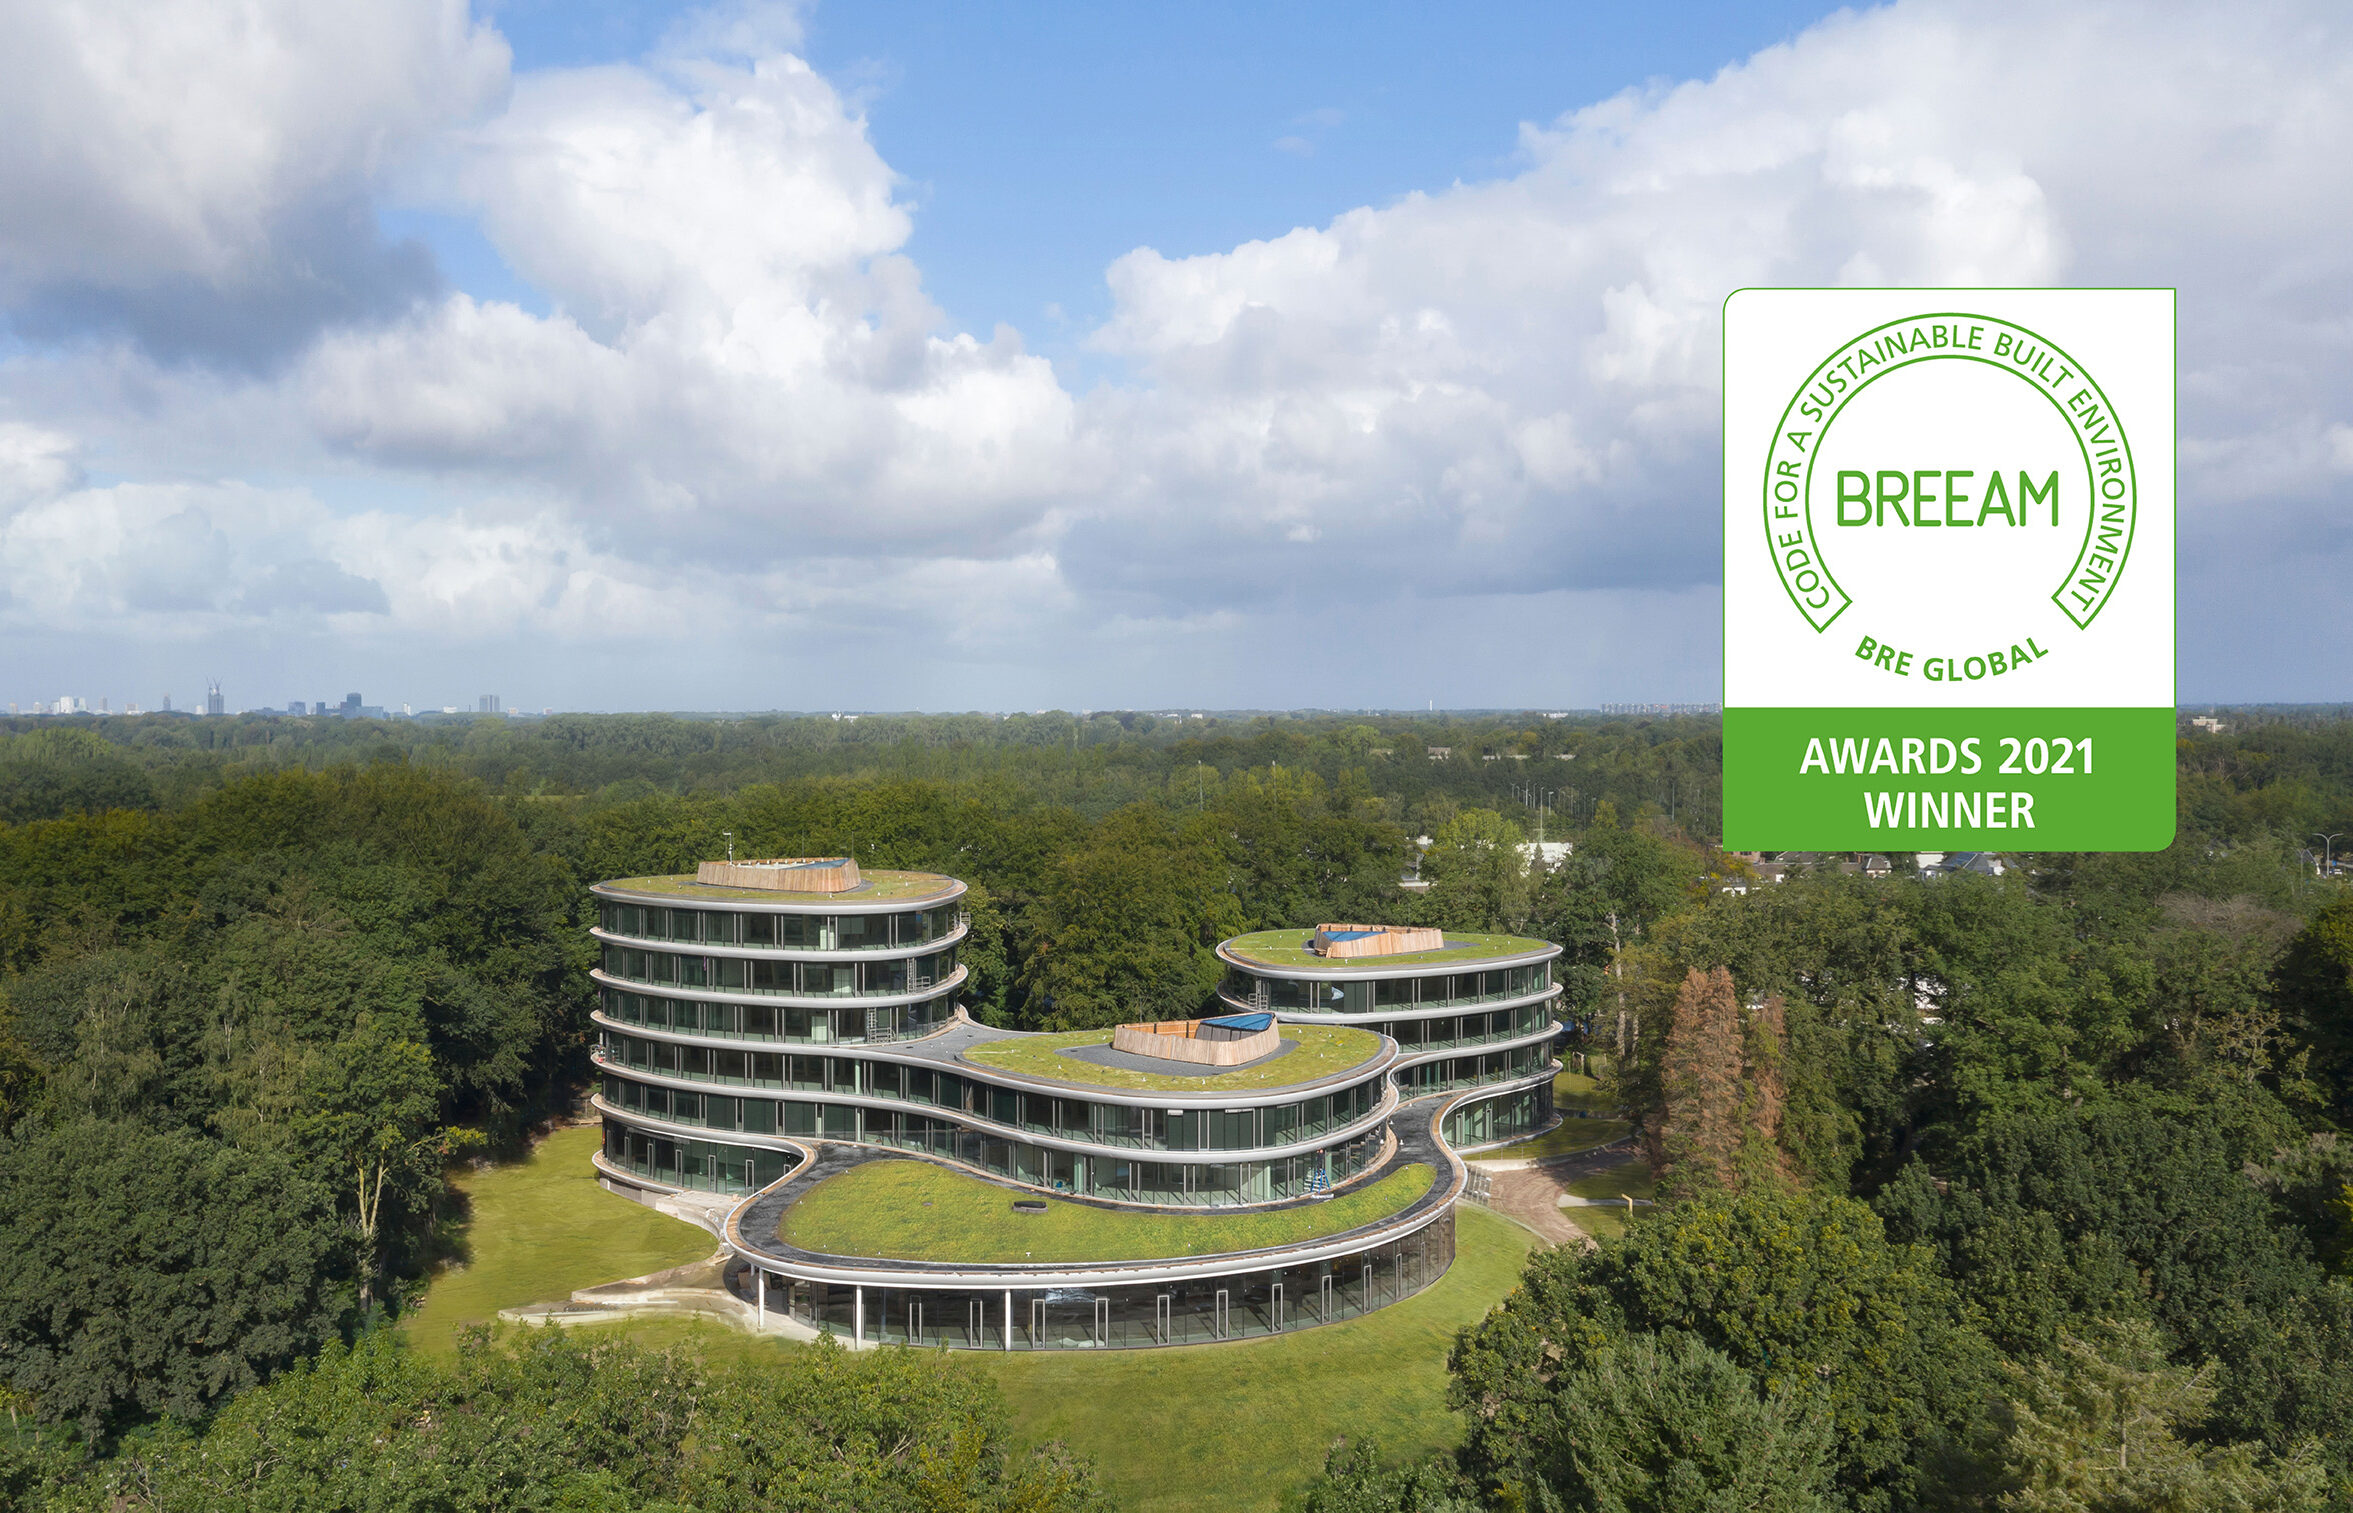 Triodos Bank wint BREEAM Awards